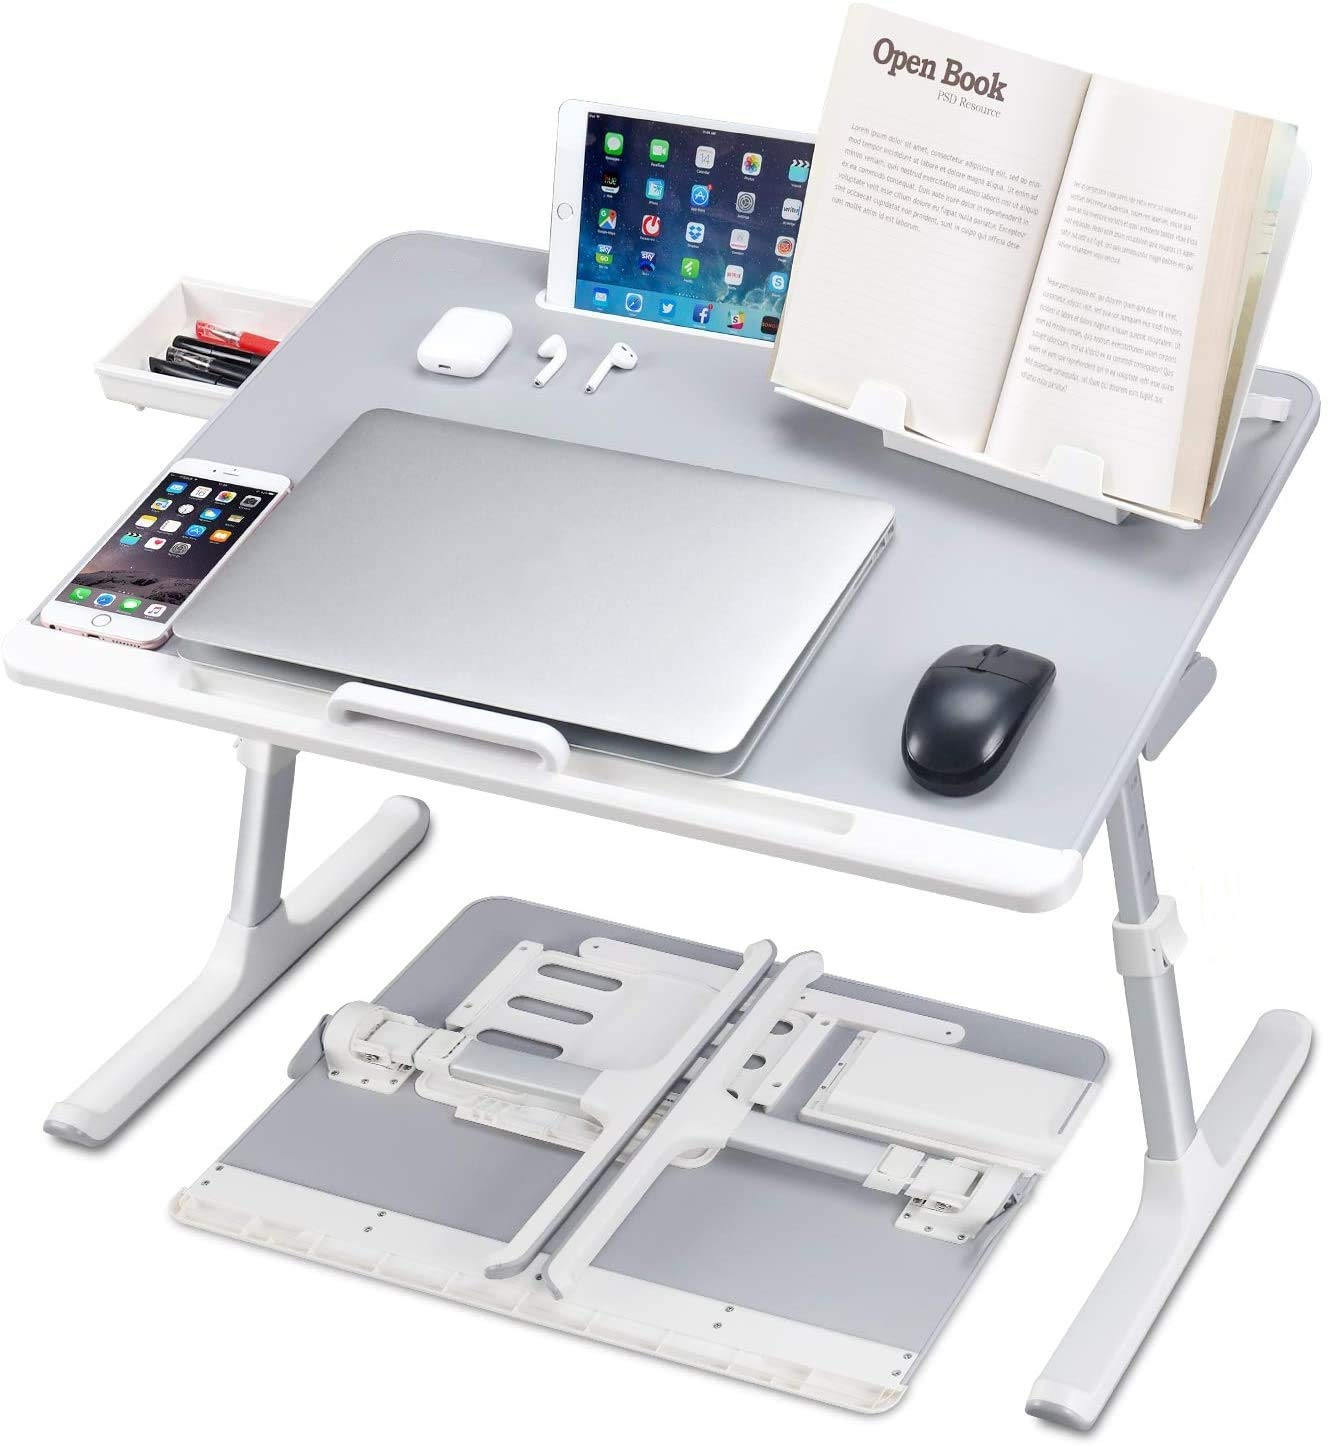 Laptop Table for bed in India